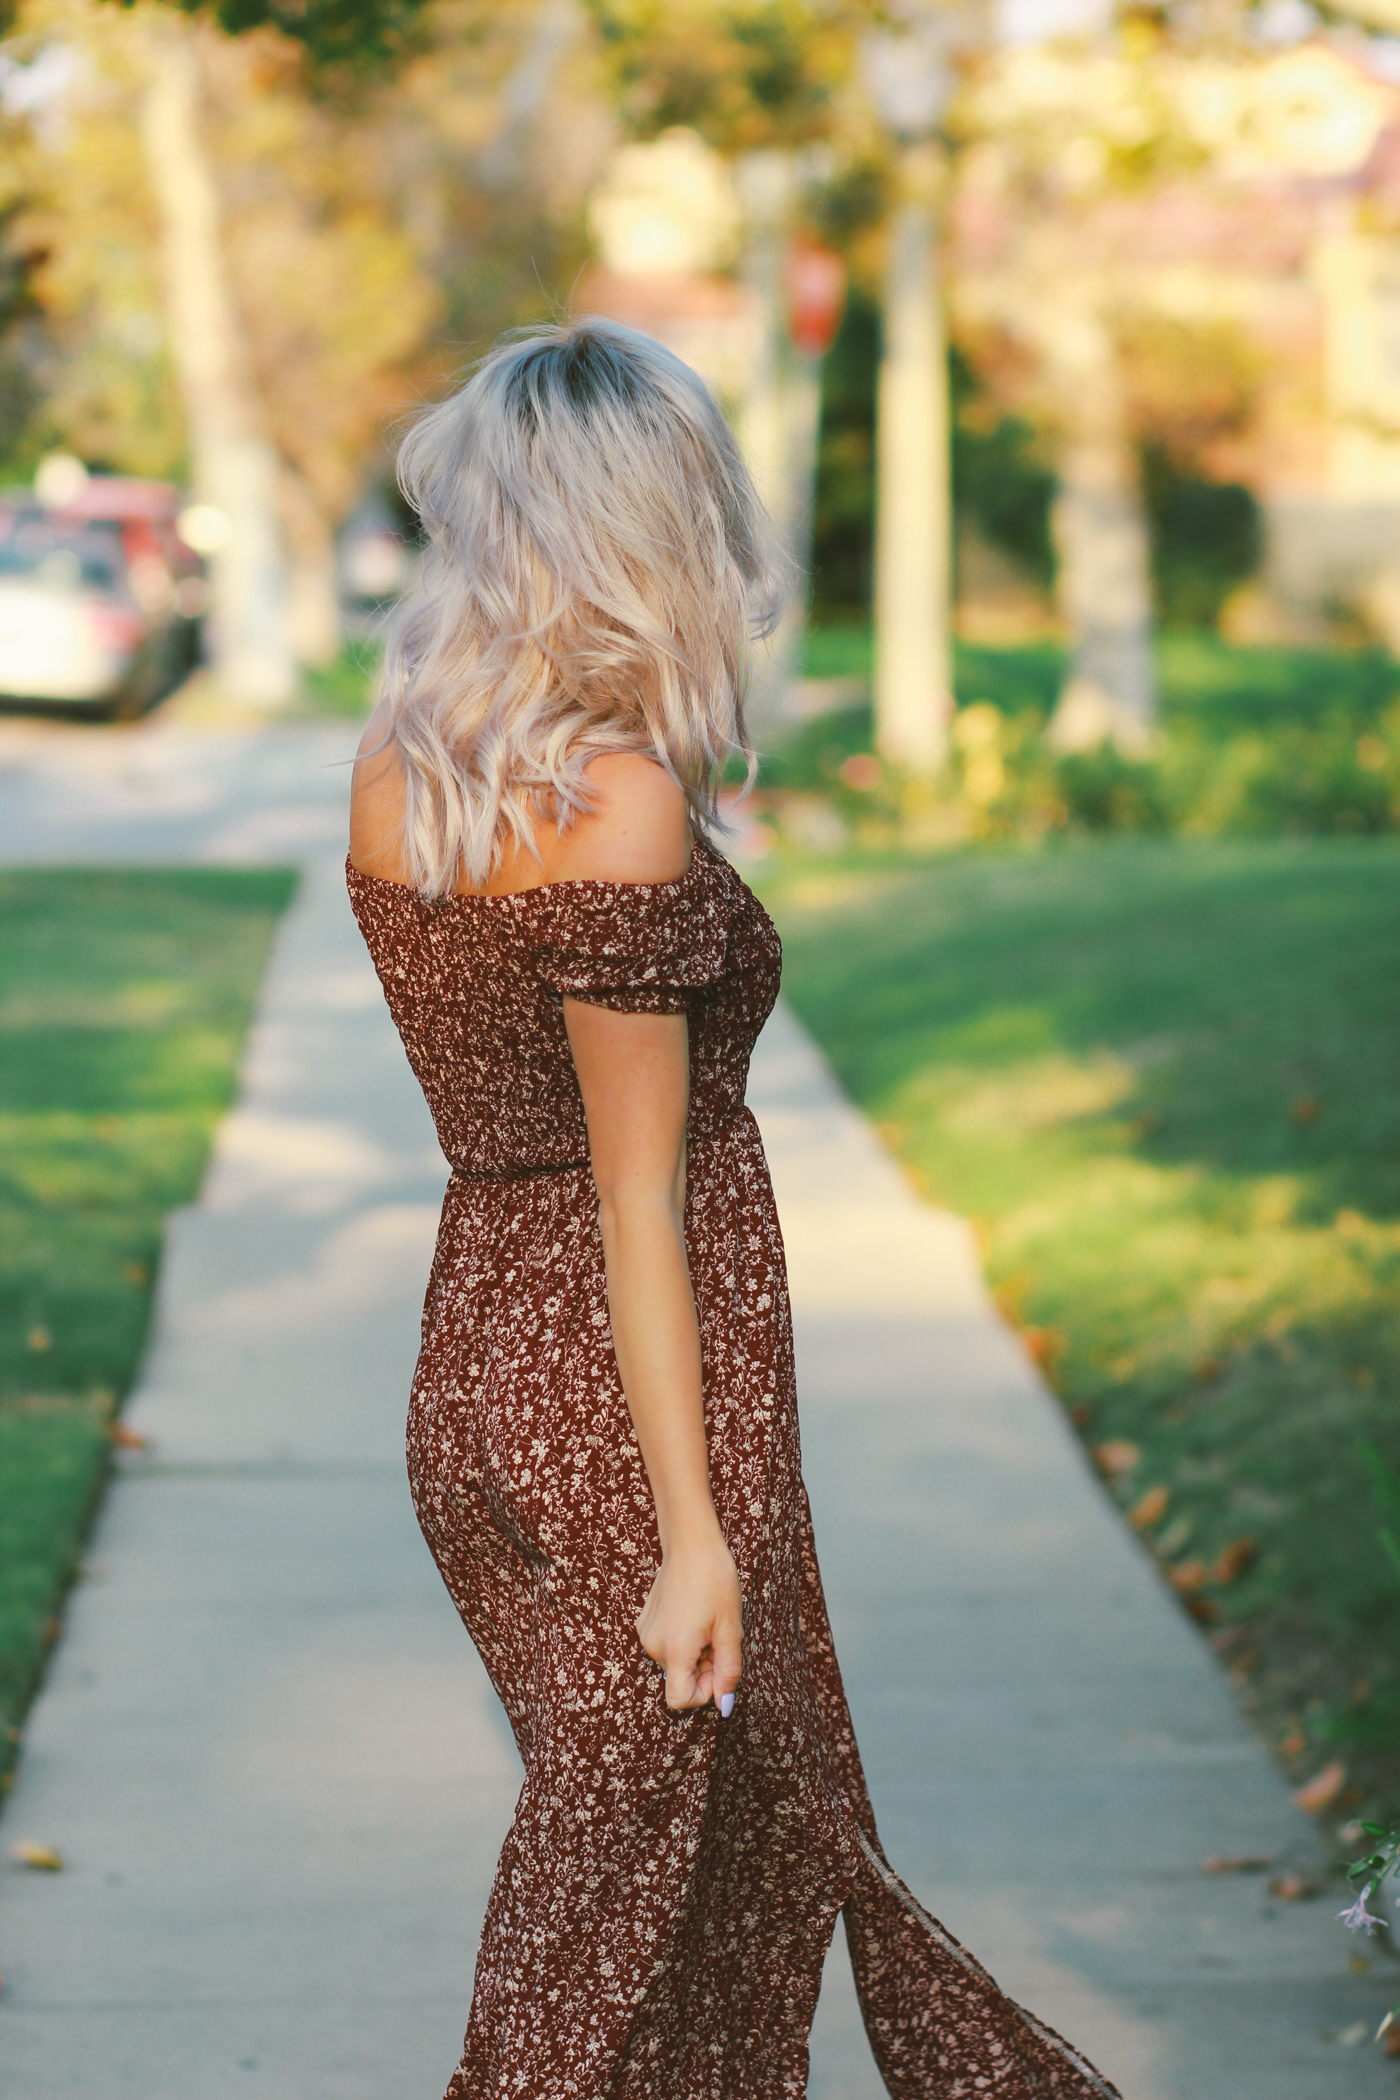 Blondie in the City | Off The Shoulder Maxi Dress | Fall Fashion | Silver Hair